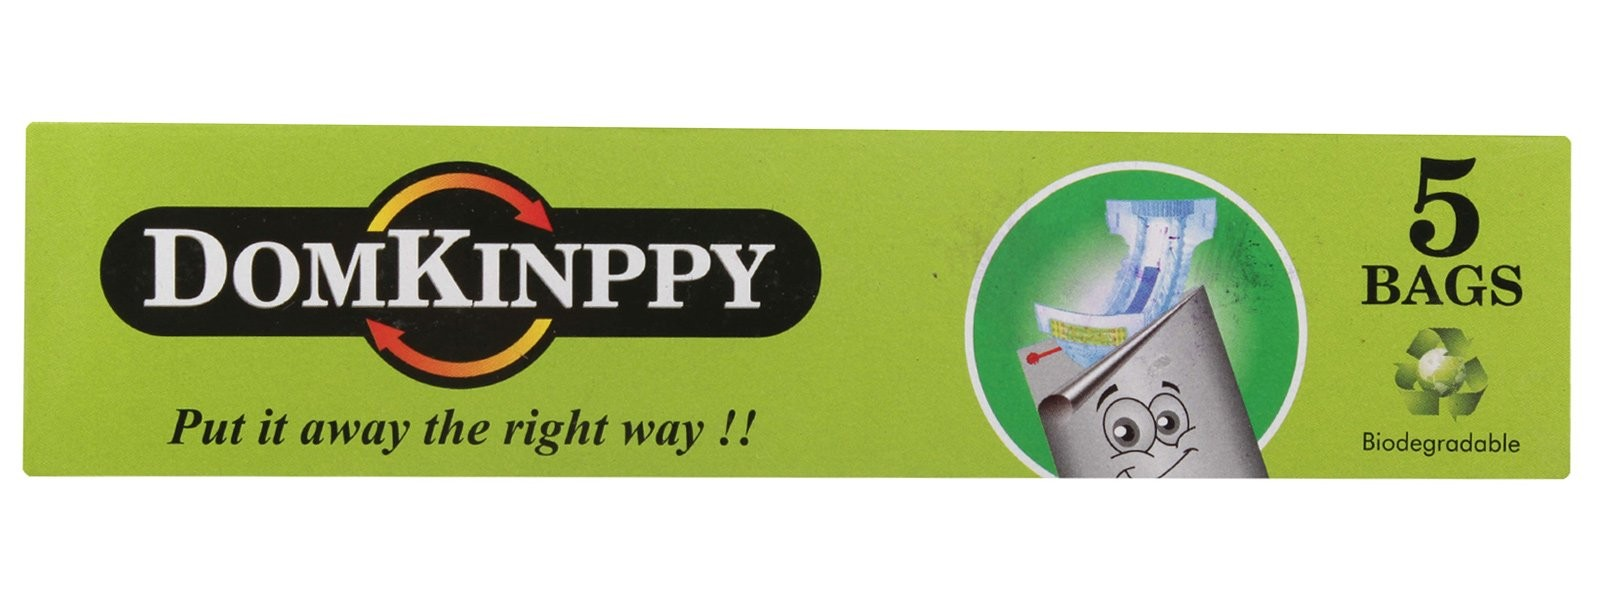 Domkinppy - Biodegradable Disposable Bags For Nappies